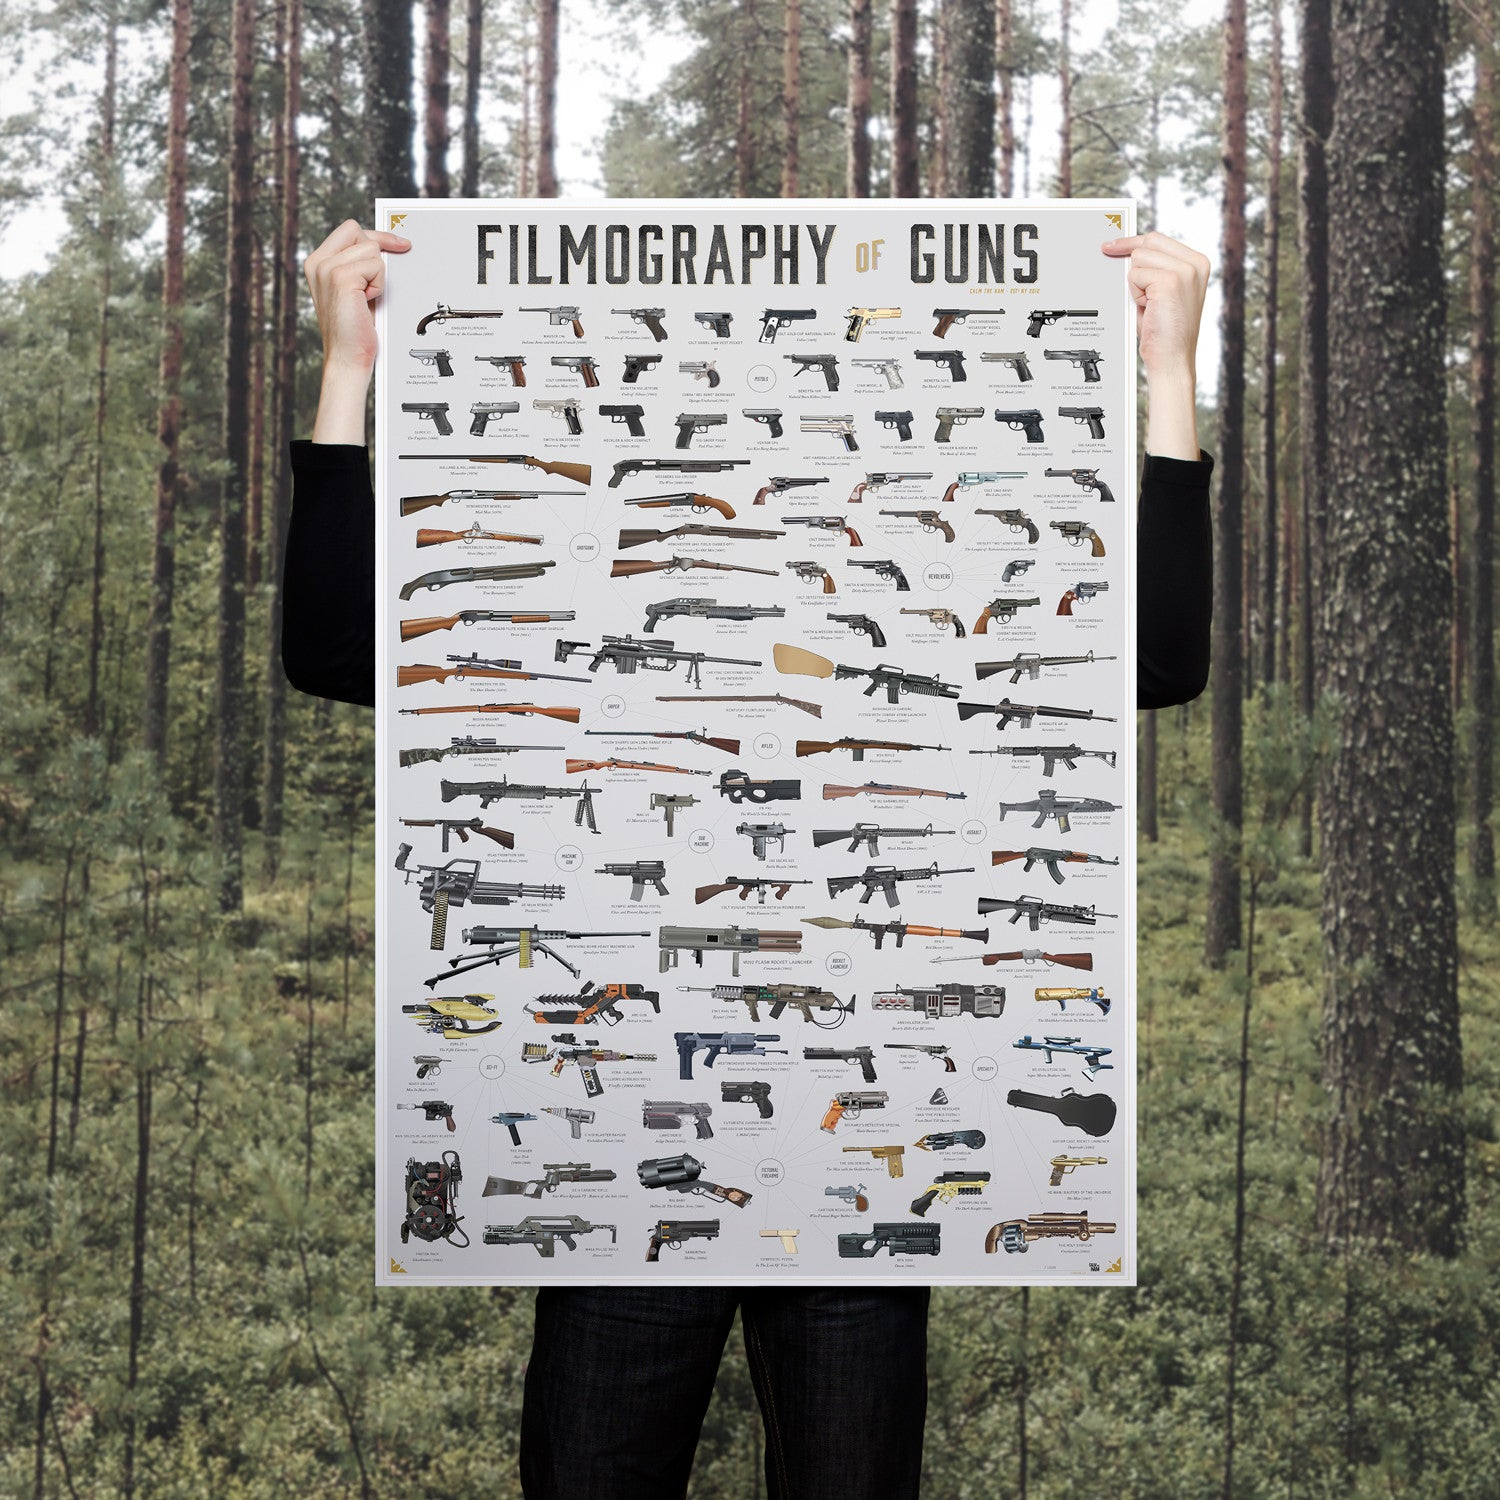 The Filmography of Guns